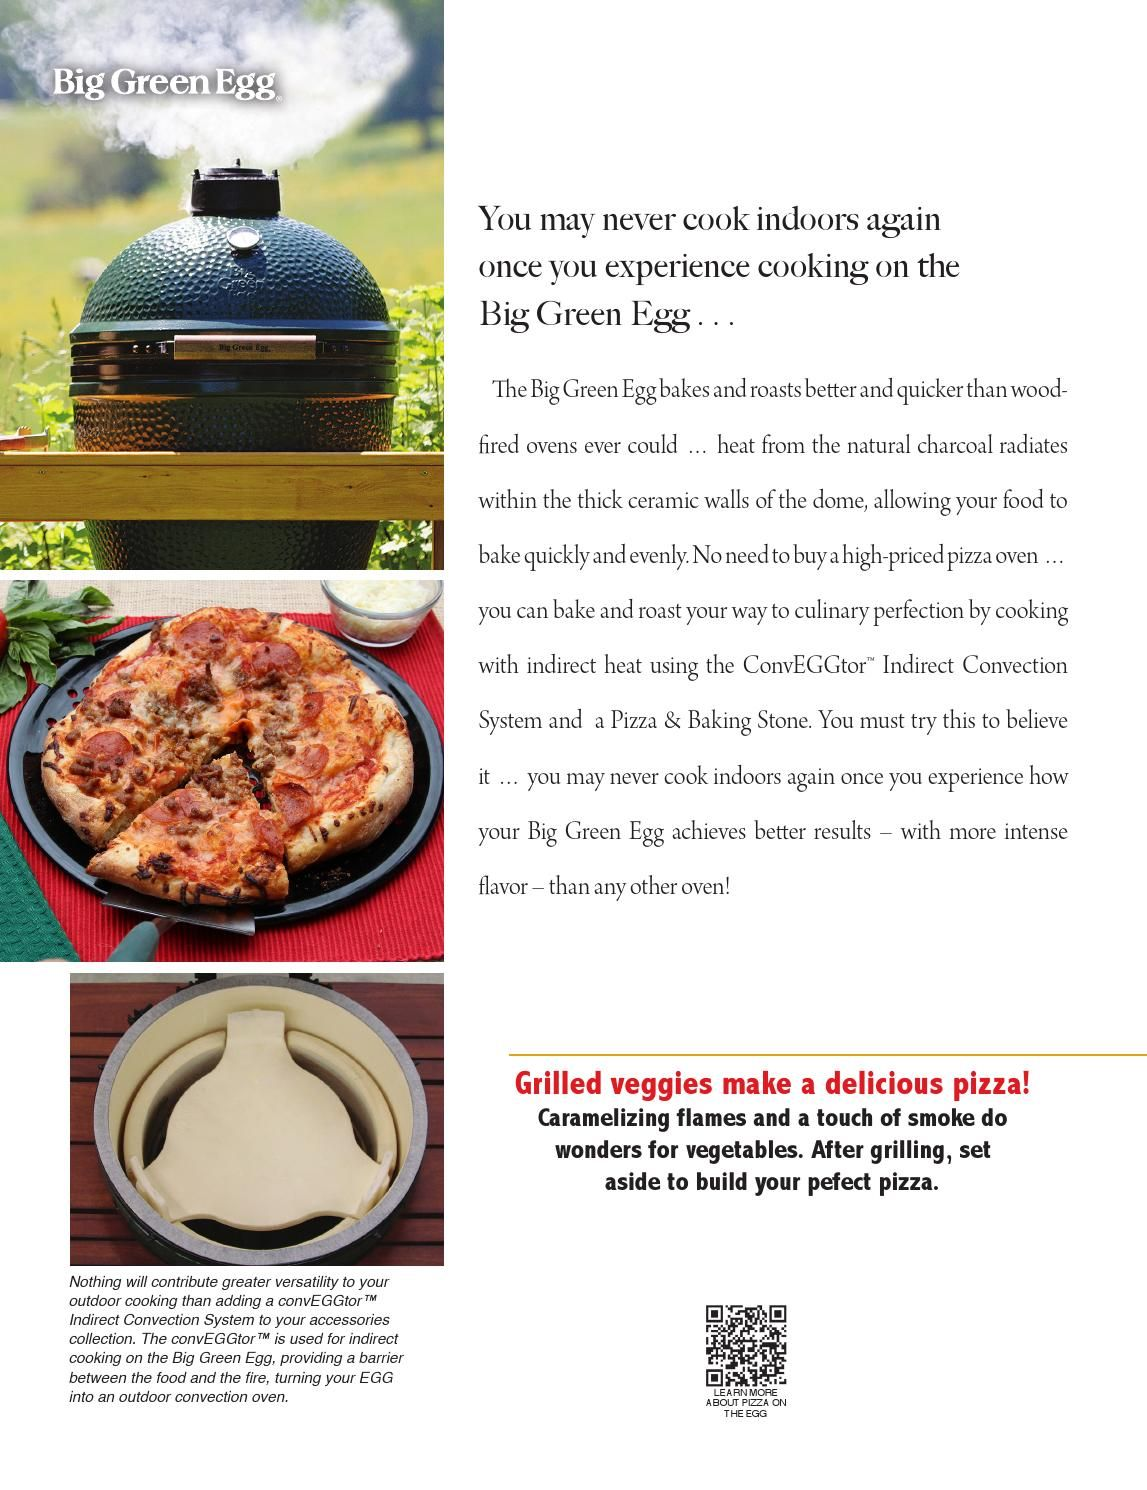 ISSUU - Cooking Tips & Techniques - Pizza Basics by Big Green Egg